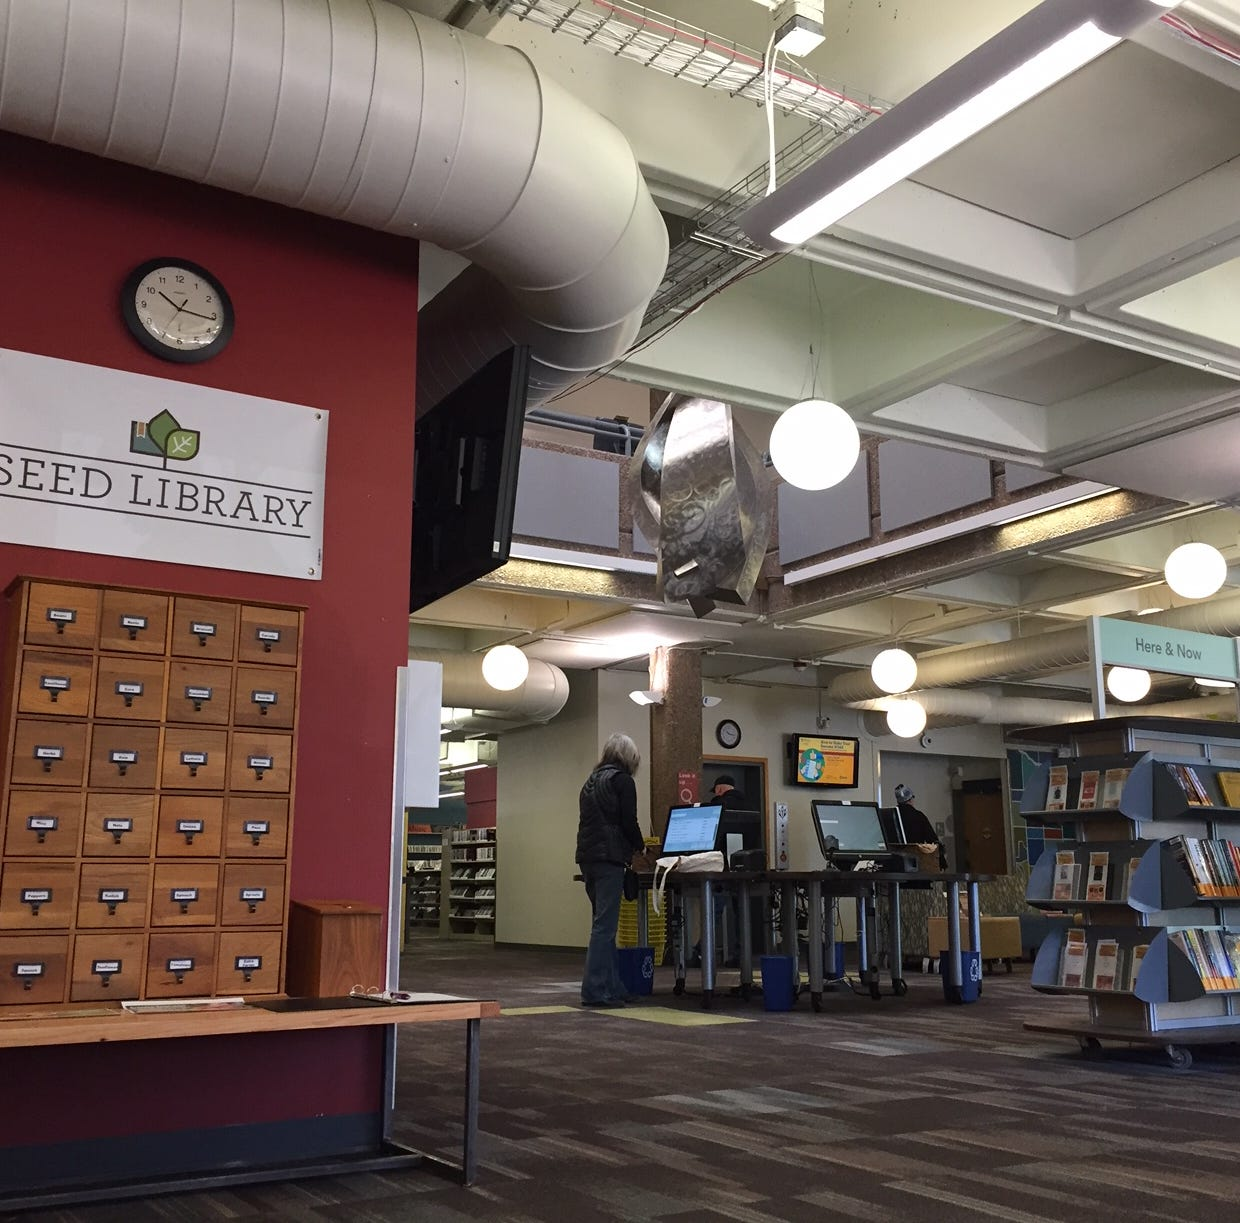 Fort Collins' Old Town Library unveils seed library (just in time for spring)